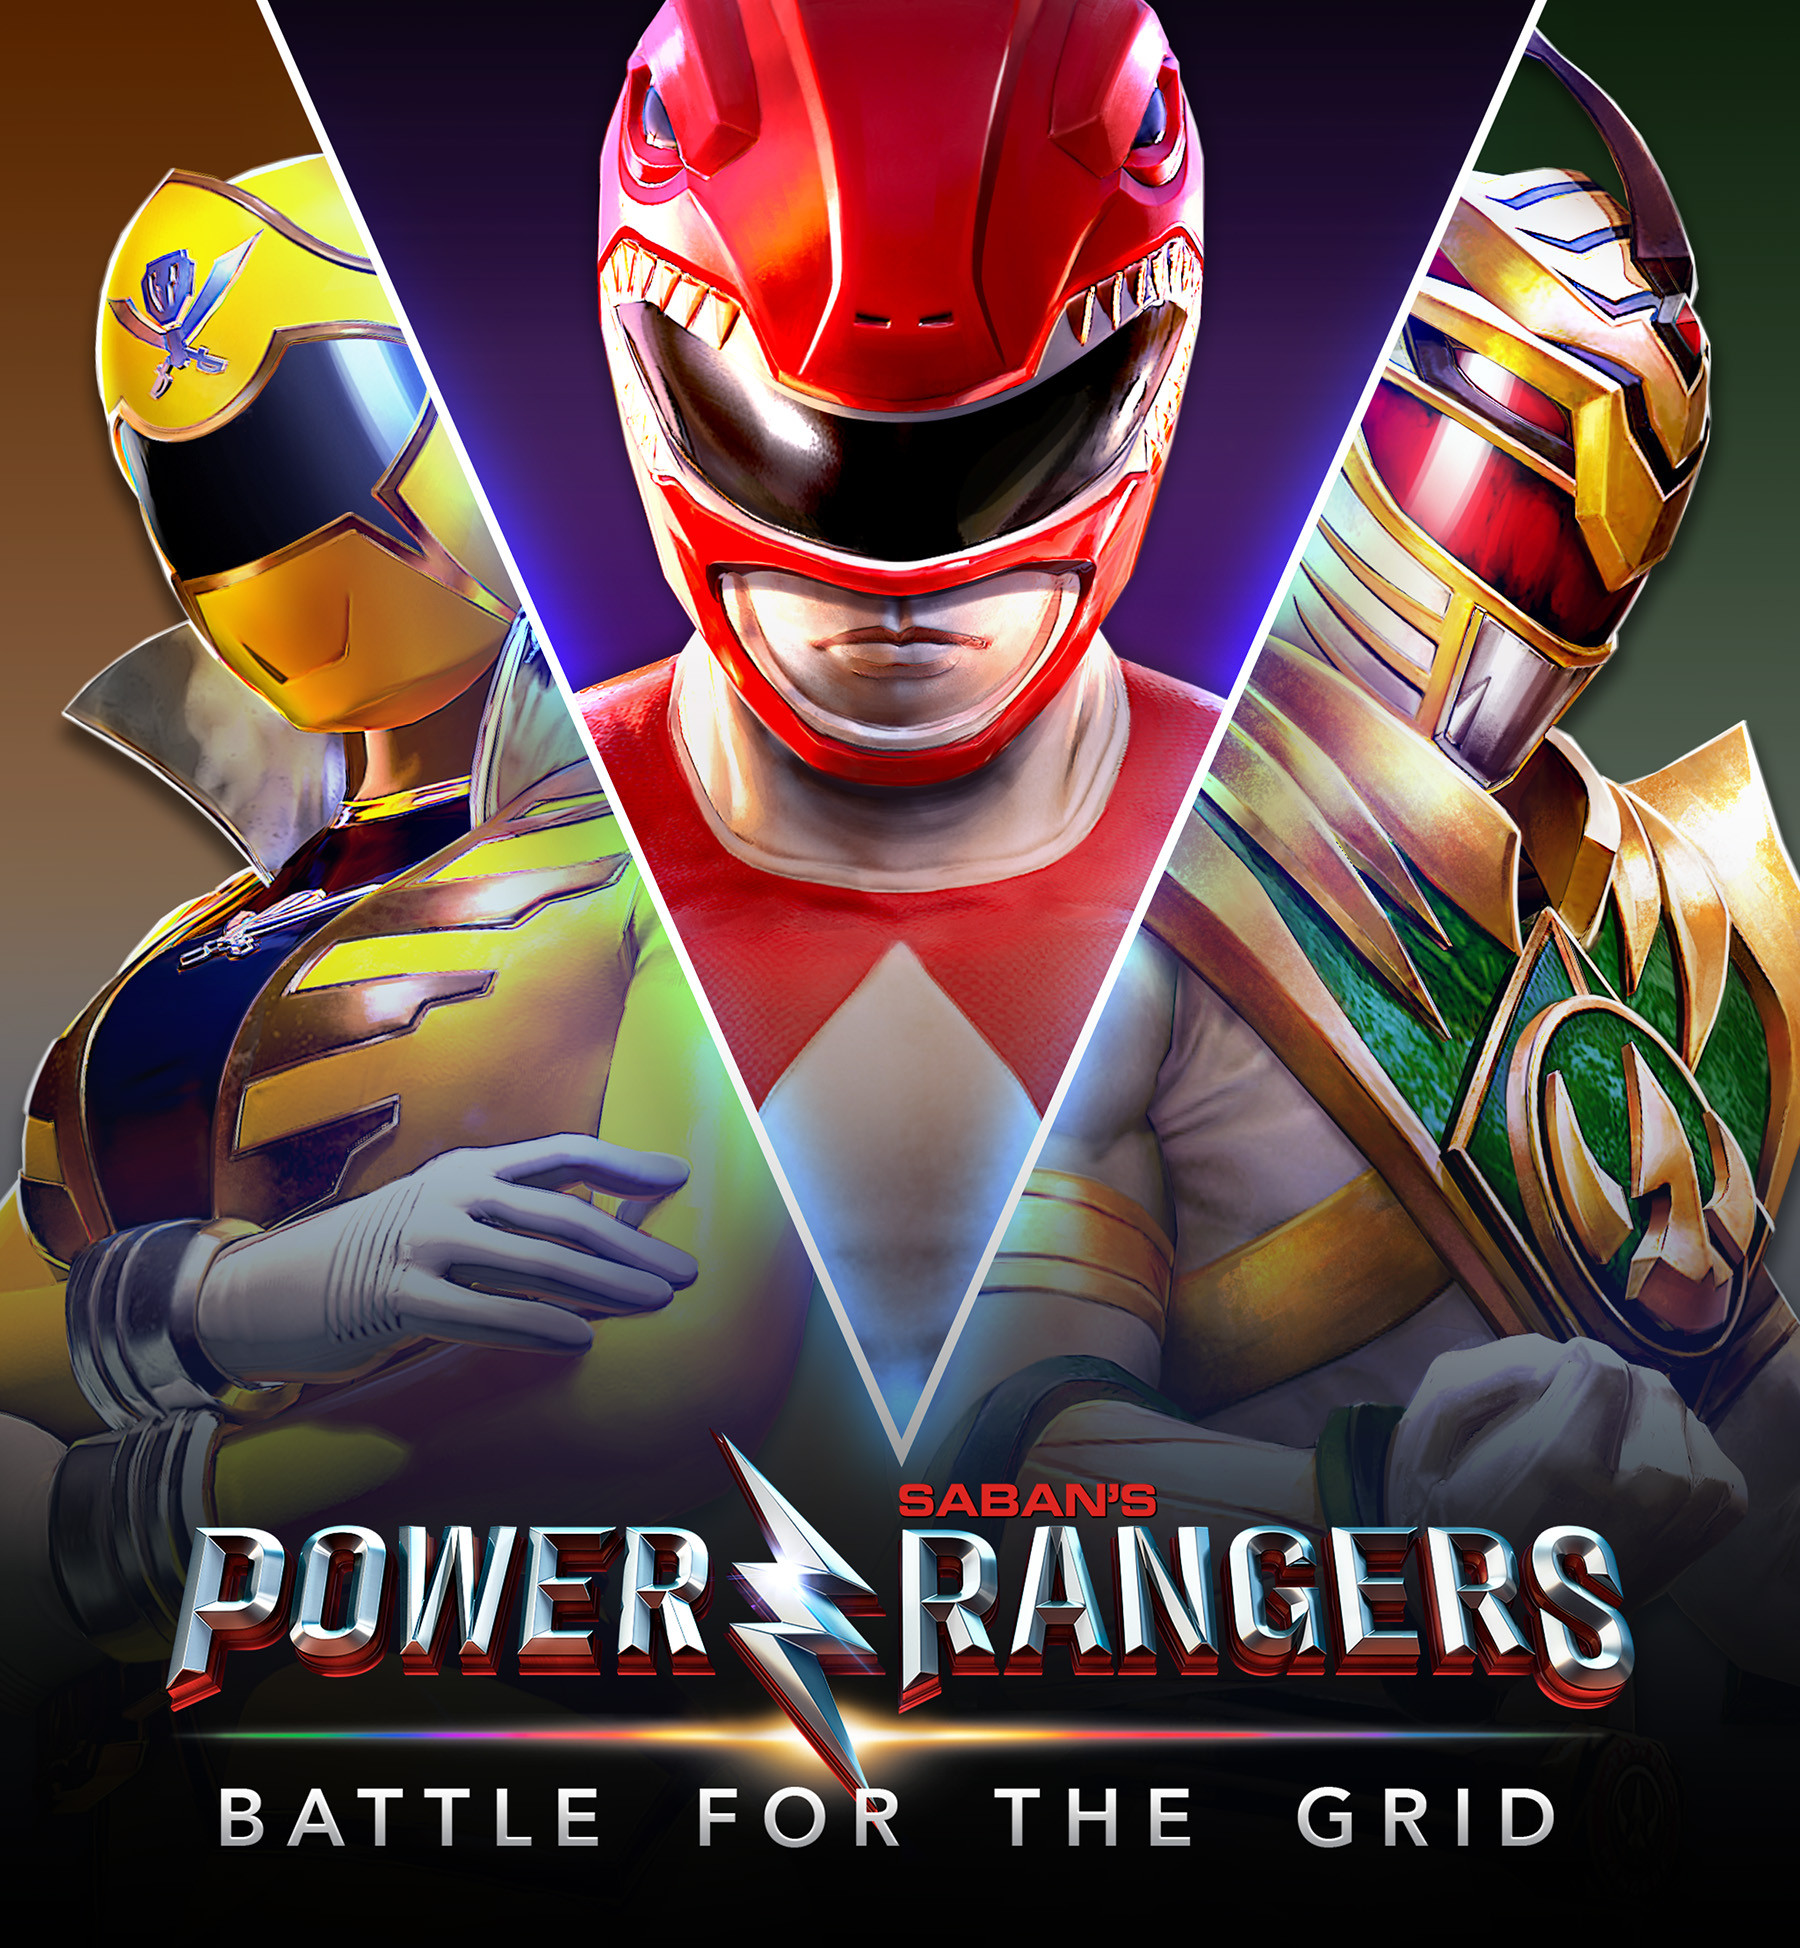 Click image for larger version  Name:	Power Rangers Battle for the Grid Key Visual.jpg Views:	1 Size:	973.1 KB ID:	3492572